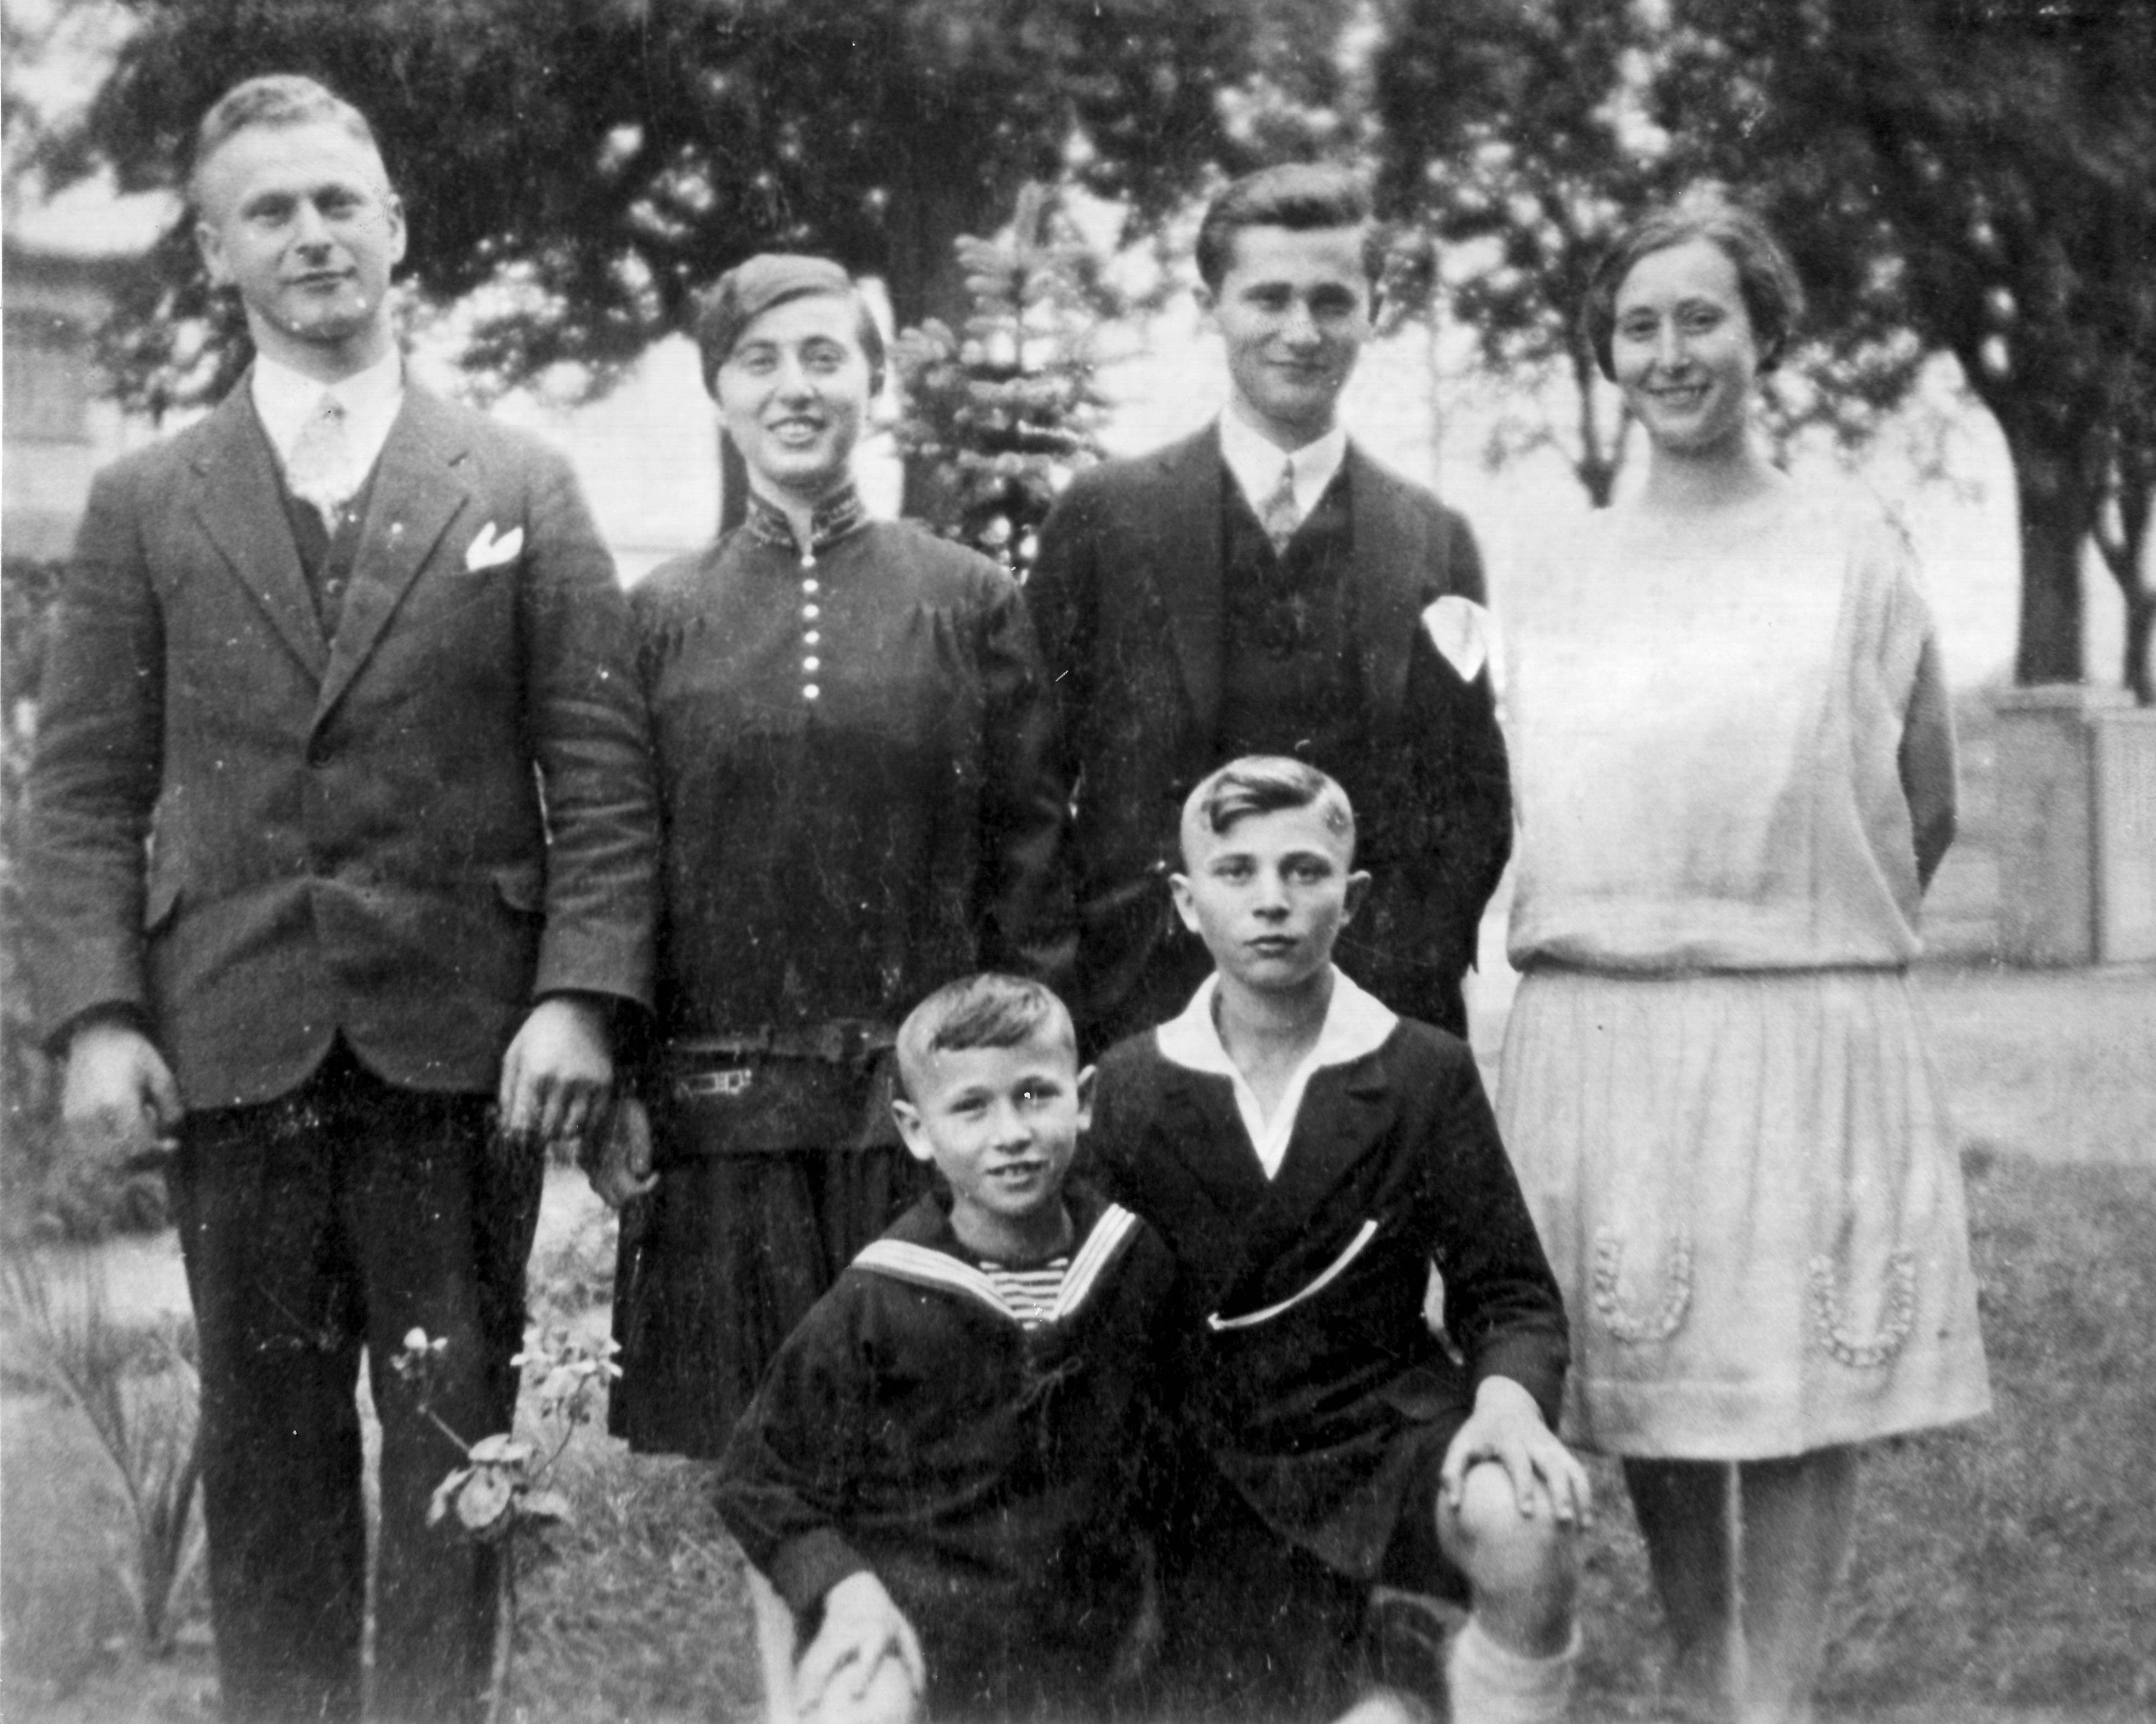 The six Klaber children around 1928-1930: Herbert, front left, and Erich; in back, Willi, left, Erna, Albert and Betti.